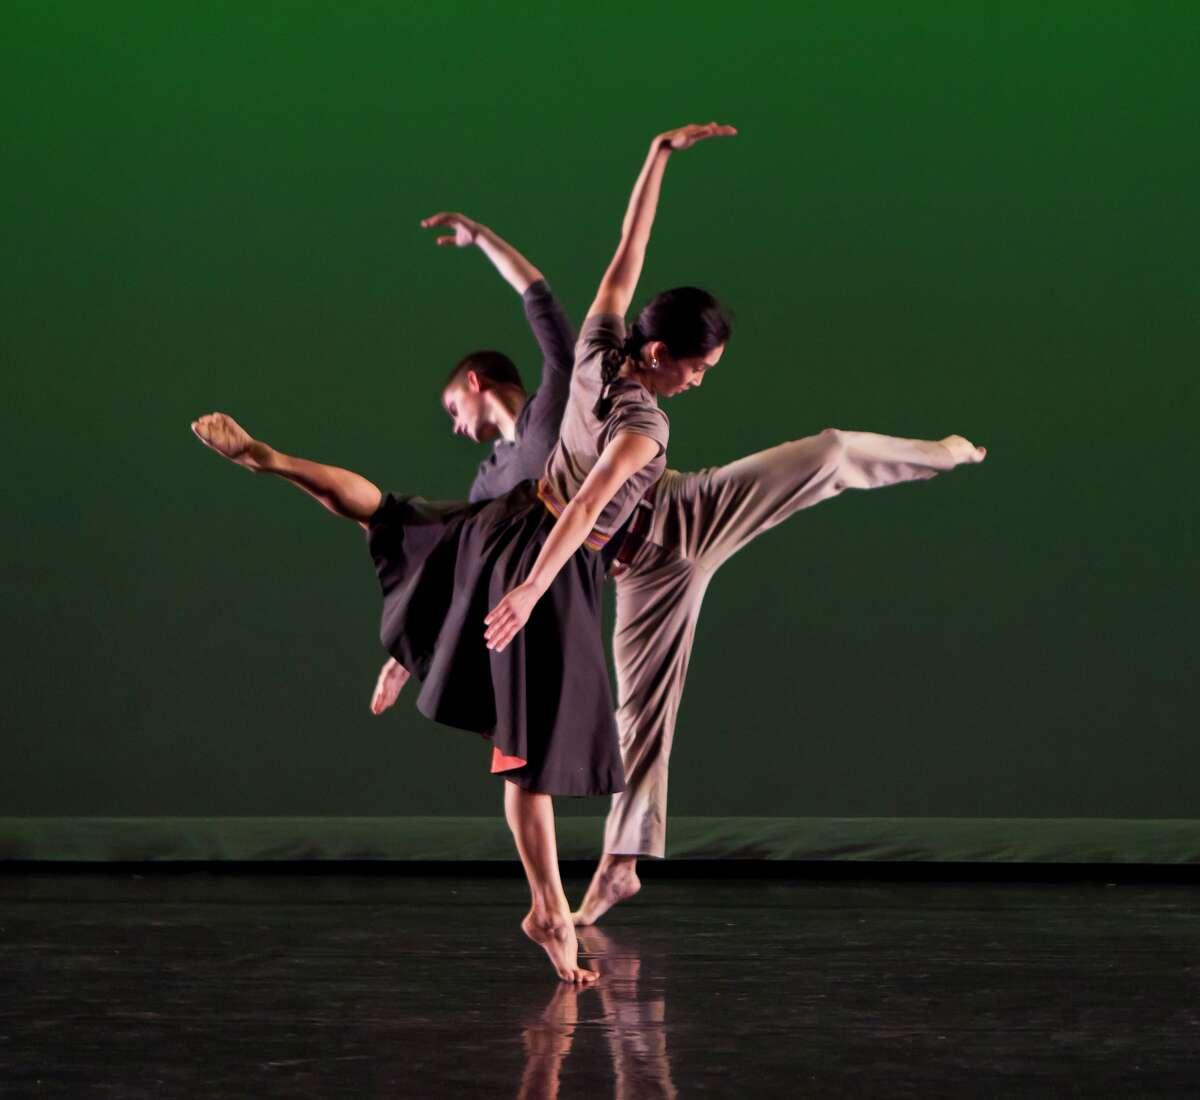 """Dancers from Mark Morris Dance Group performing """"Festival Dance,"""" one of the works on the program when Society for the Performing Arts presents the company Jan. 31 and Feb. 1 at the Wortham Theater Center. Photo: Mark Morris Dance Company in """"The Muir""""; """"Petrichor"""" & """"Festival Dance (World Premiere)""""; MARK MORRIS, Choreographer/Artistic Director; invited dress rehearsal photographed: Wednesday, March 16, 2011; 4:00 PM at Mark Morris Dance Center; 3 Lafayett"""